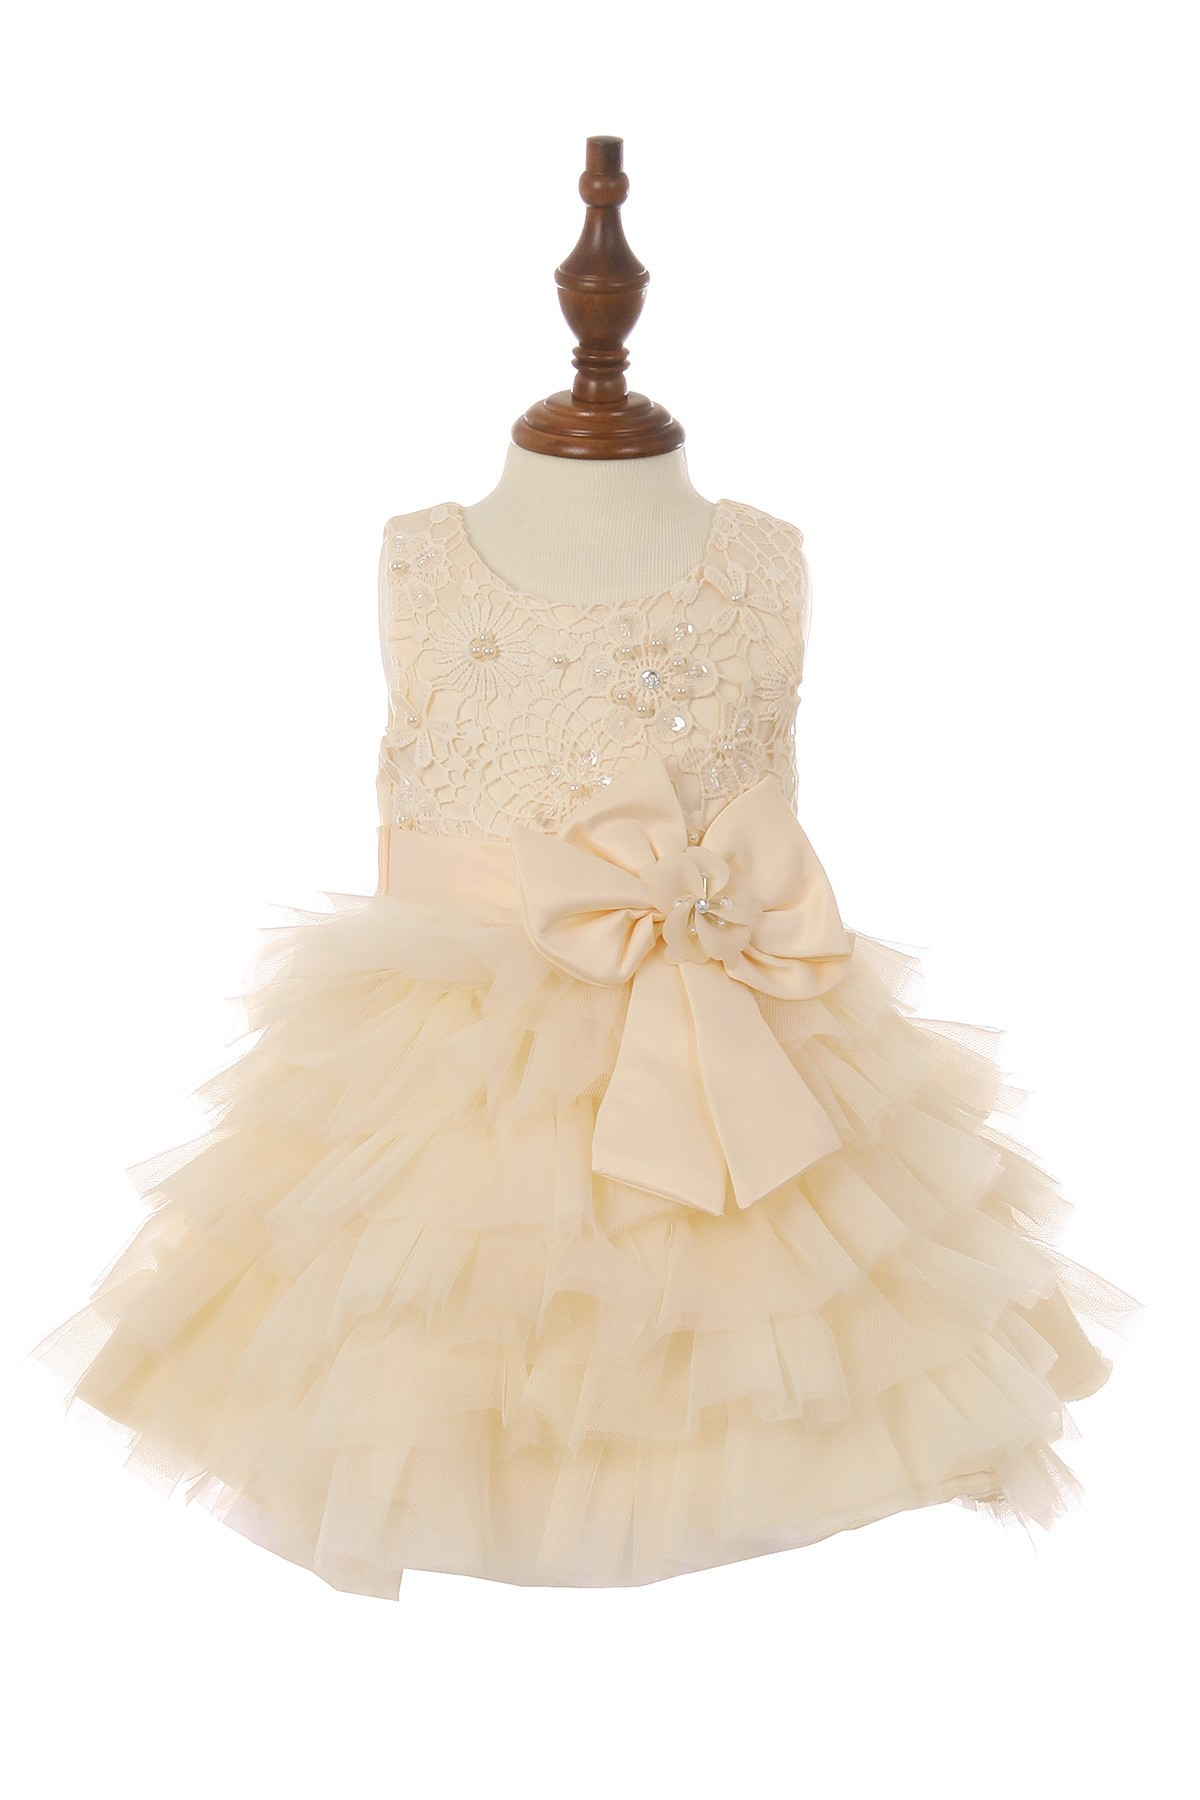 Baby dress with bow, and rows of ruffles